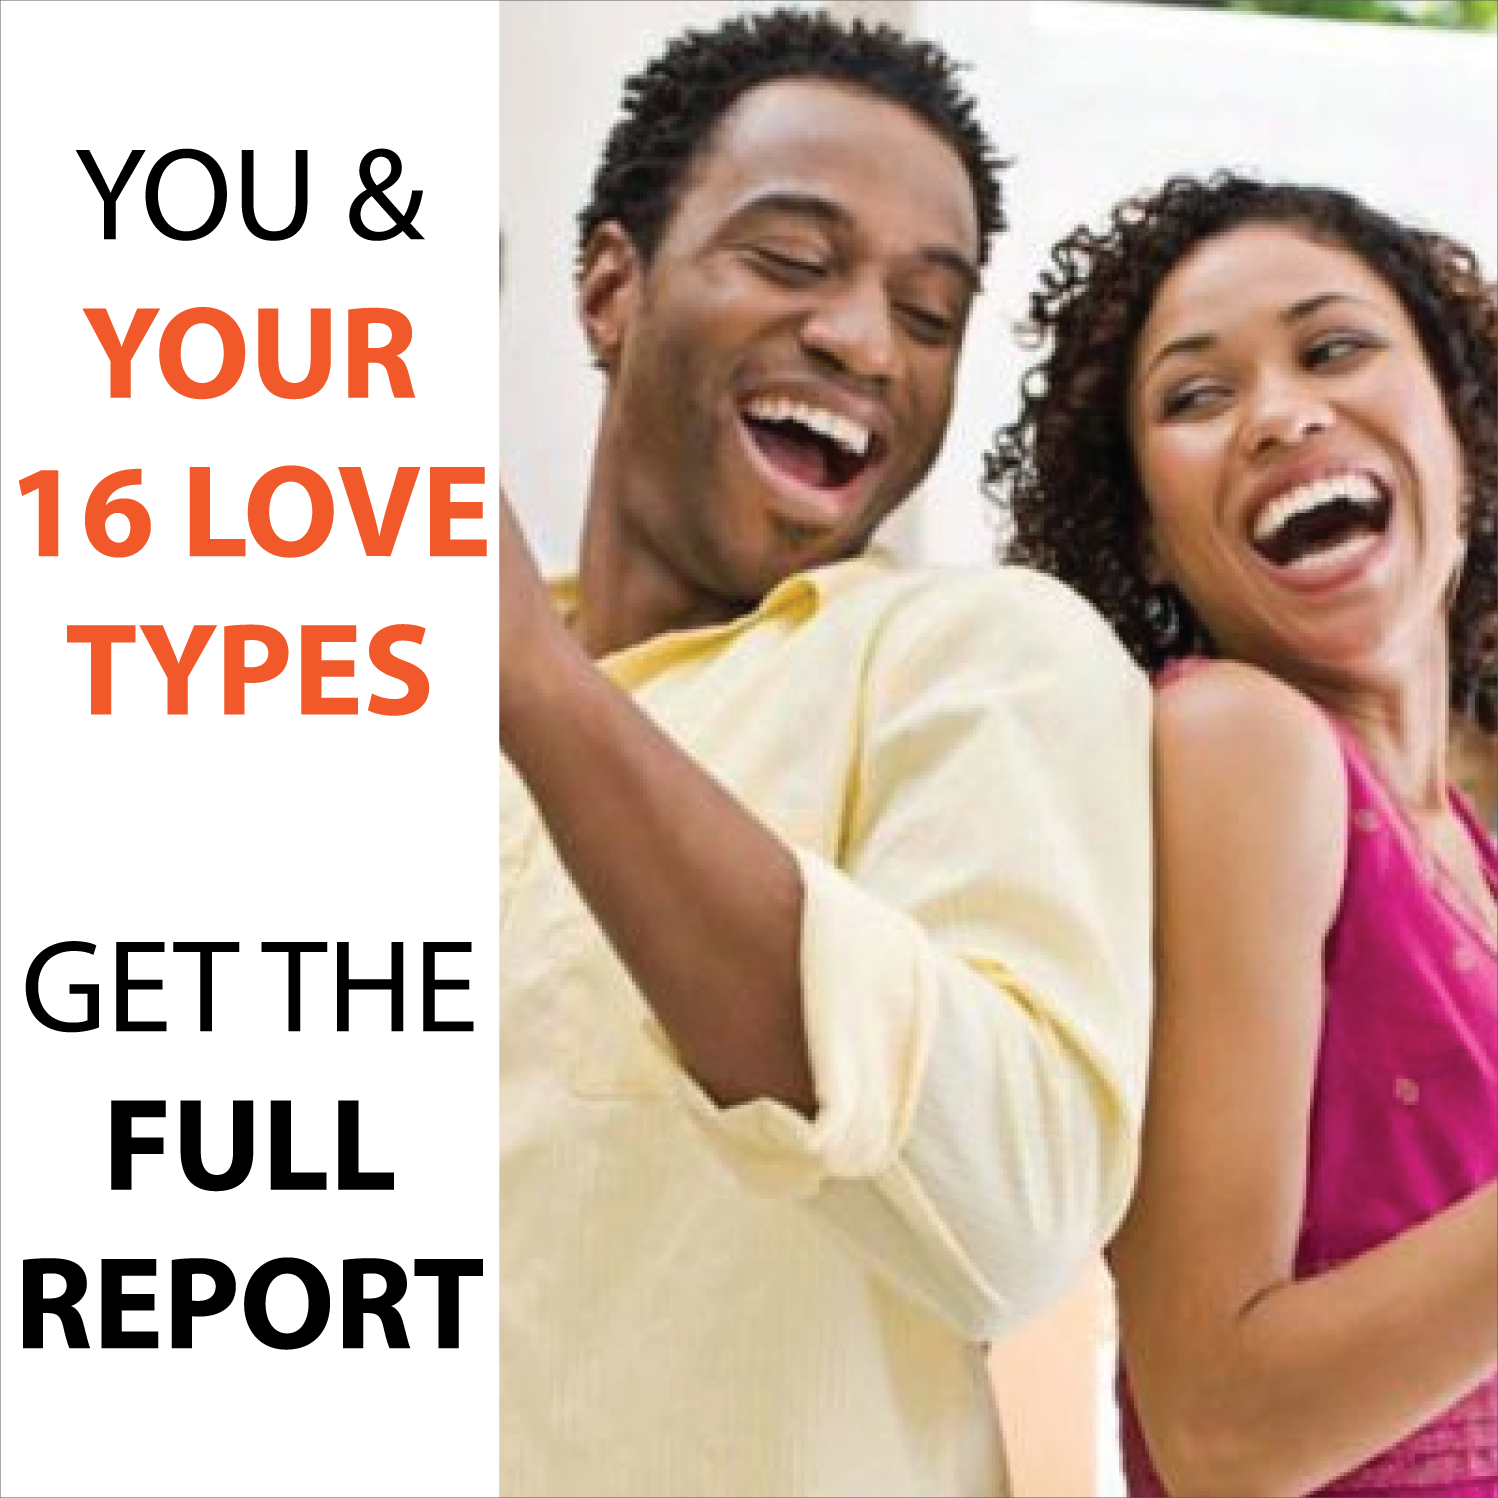 Your 16 'Love Types' Full Report